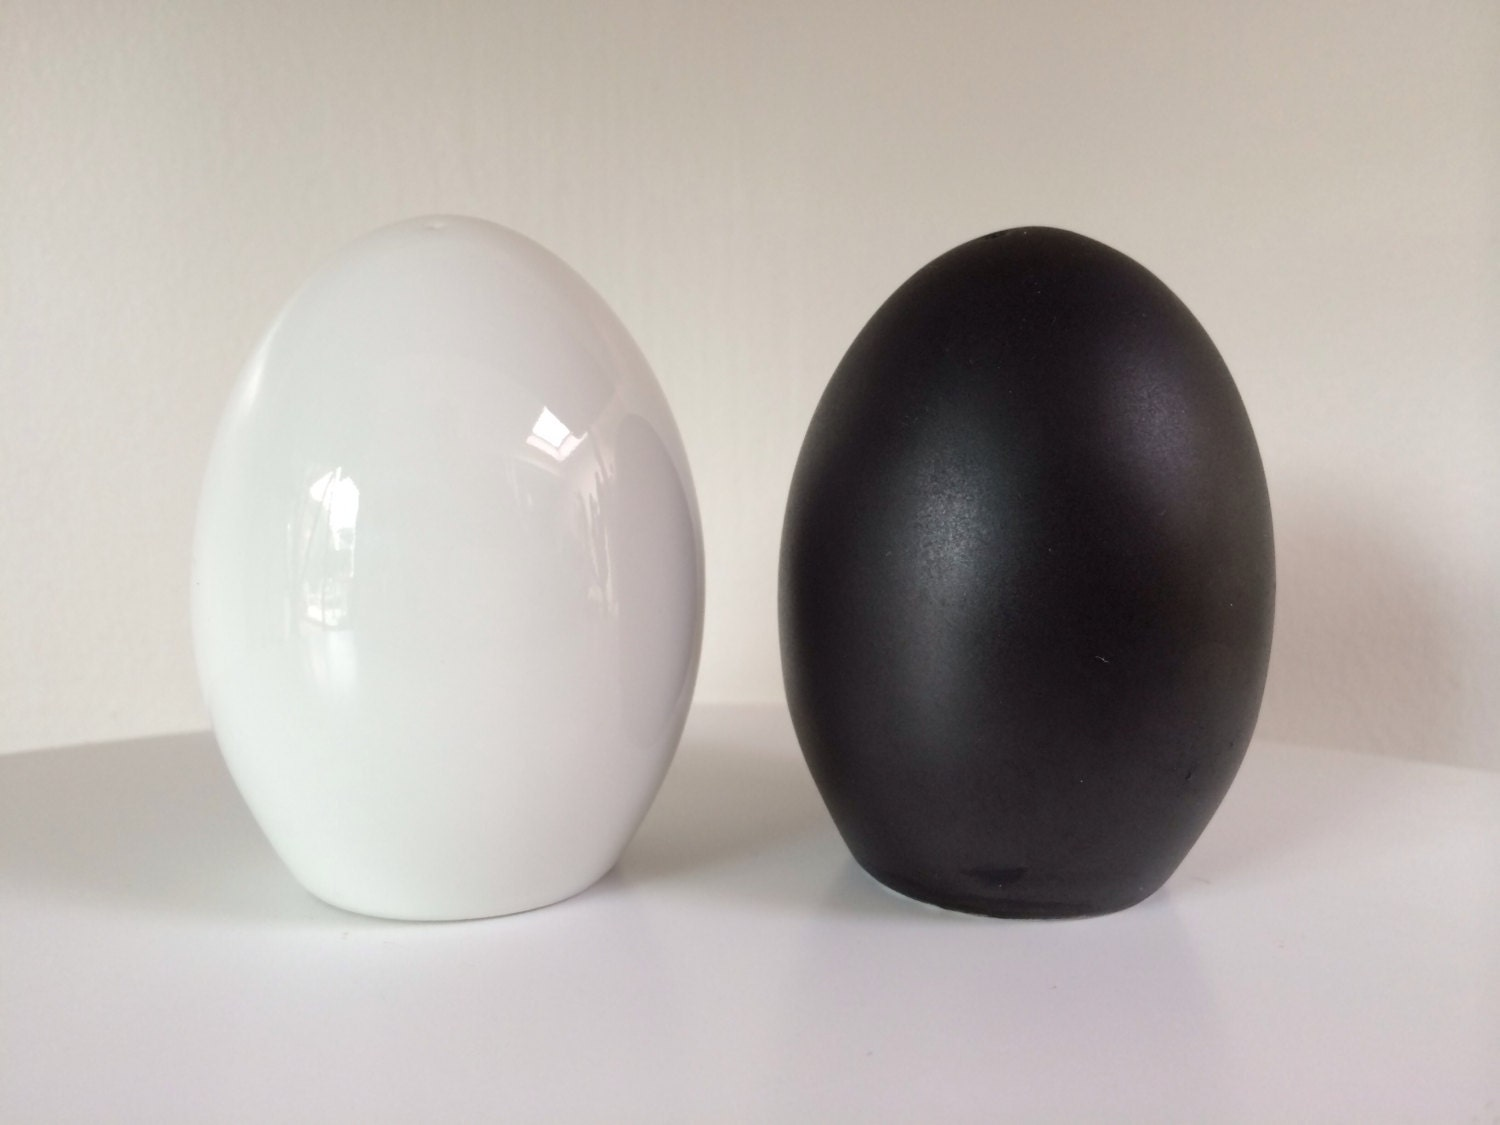 Vintage egg shape salt and pepper shakers for takahashi - Egg shaped salt and pepper shakers ...